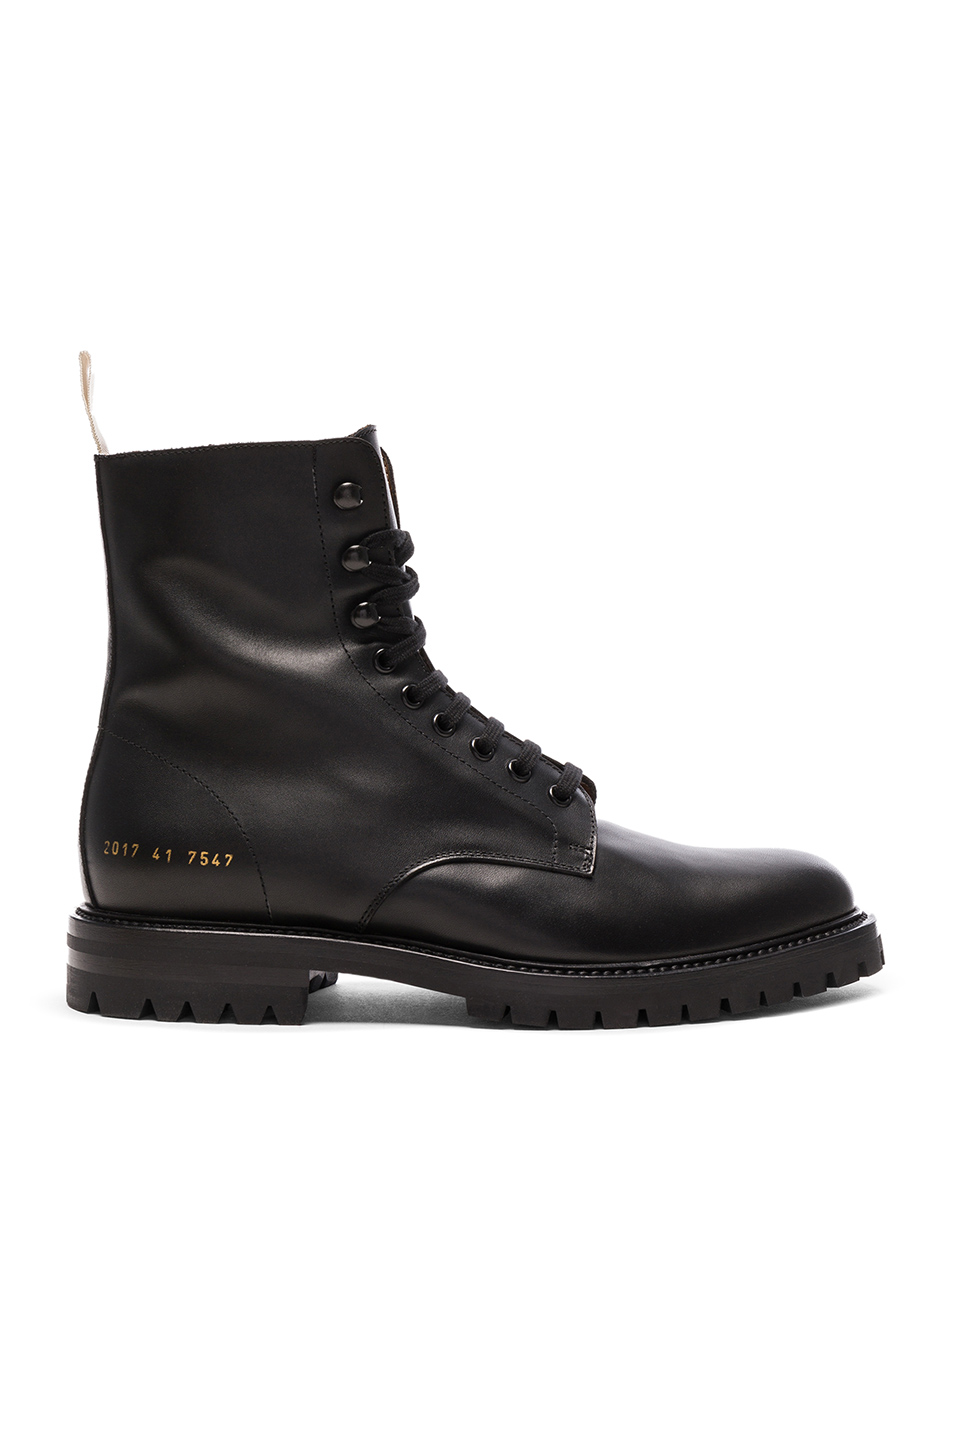 offer discounts outstanding features best value Leather Winter Combat Boots, Common Projects